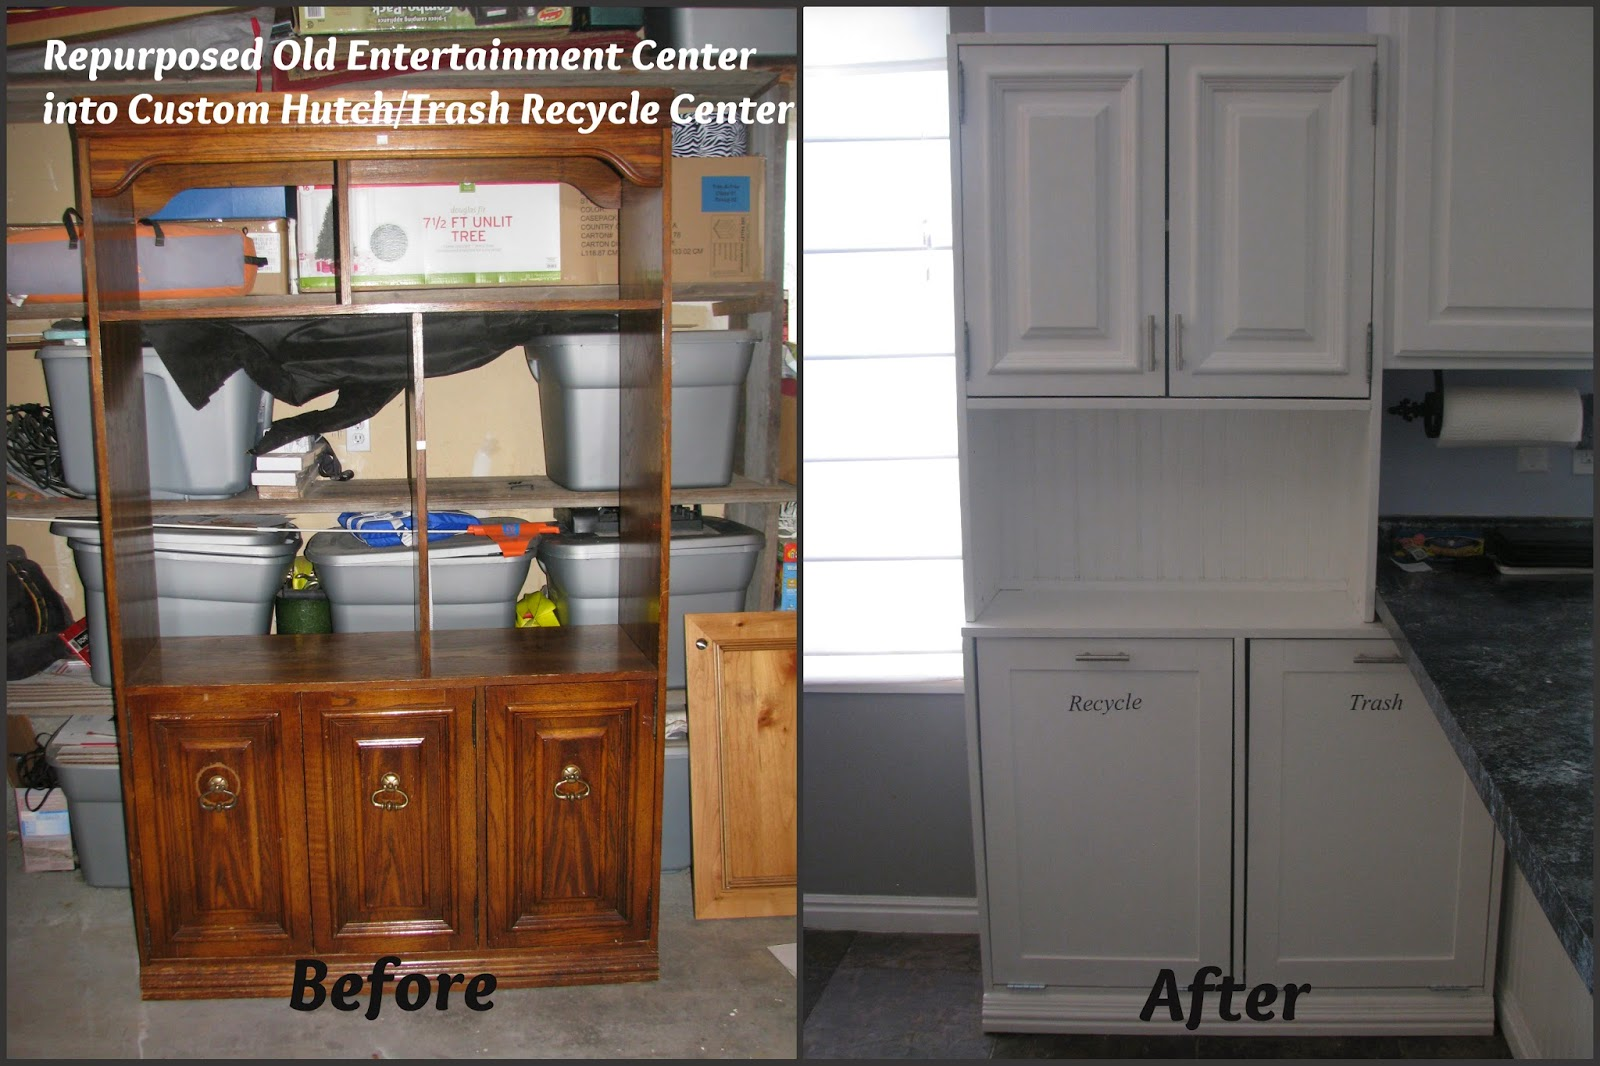 http://www.mysocalleddiyblog.com/2014/04/repurpose-old-entertainment-center-into.html